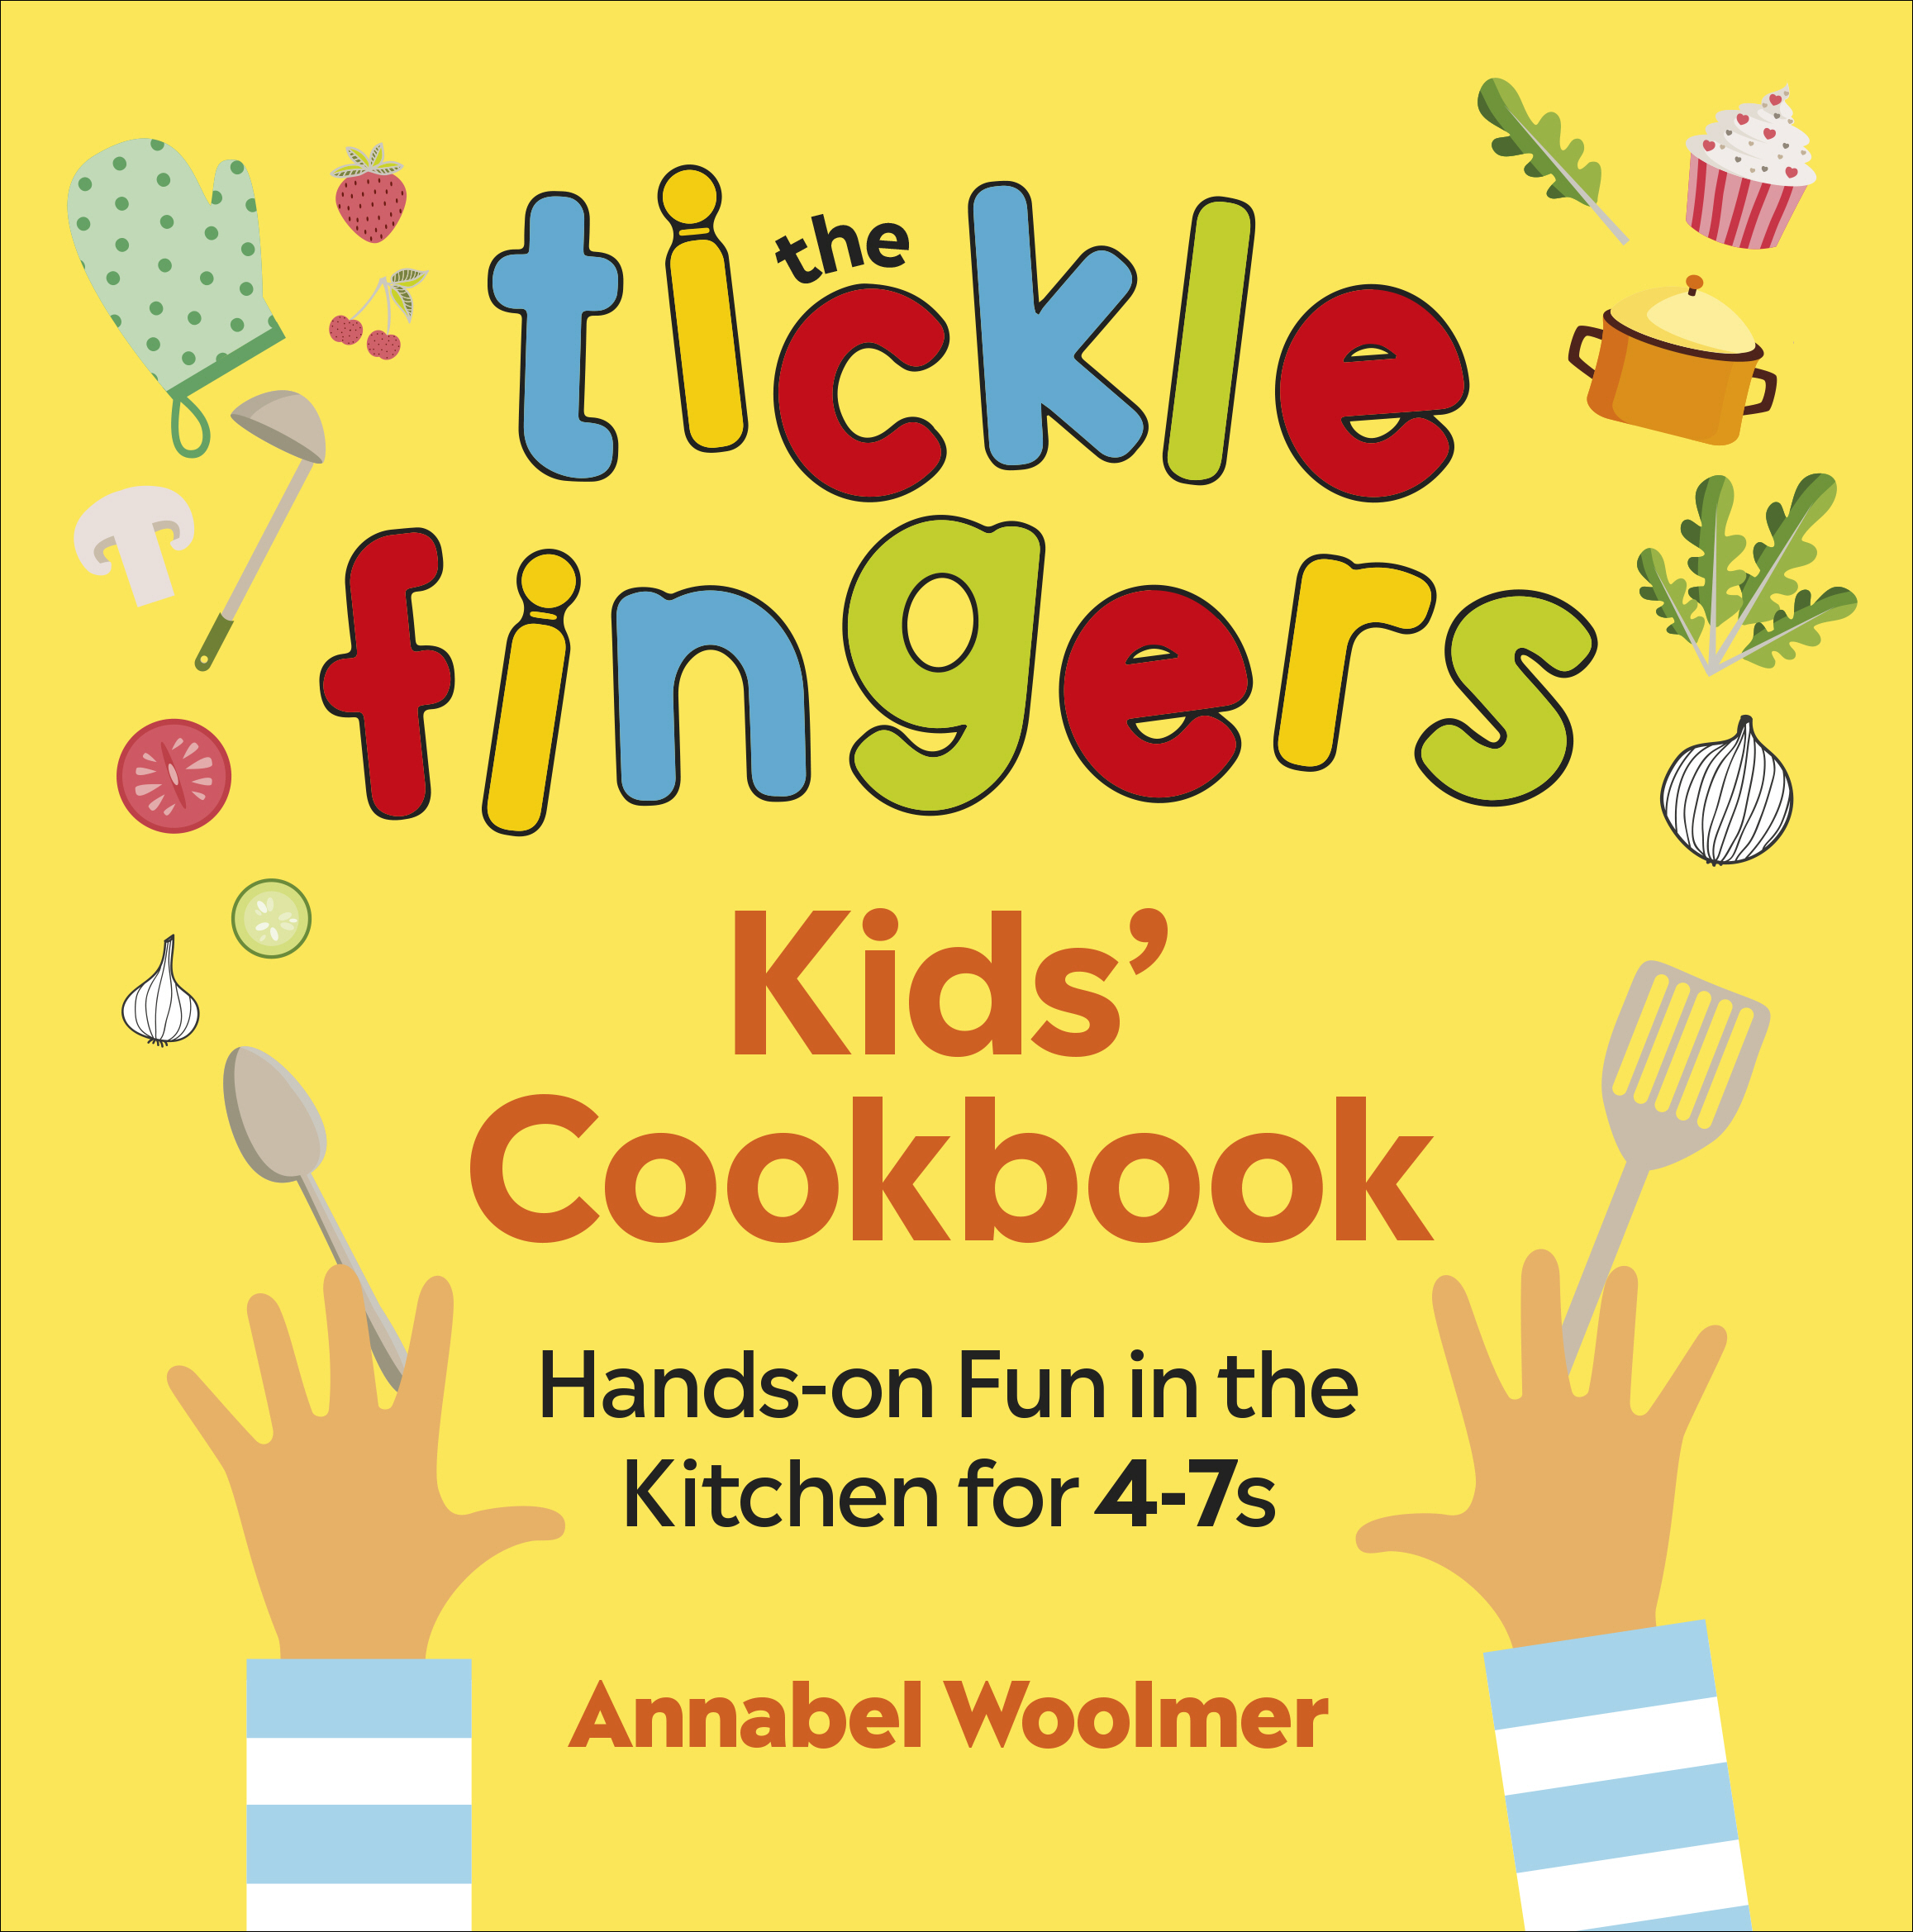 Tickle Fingers Kids Cookbook: hands-on fun in the kitchen for 4-7s